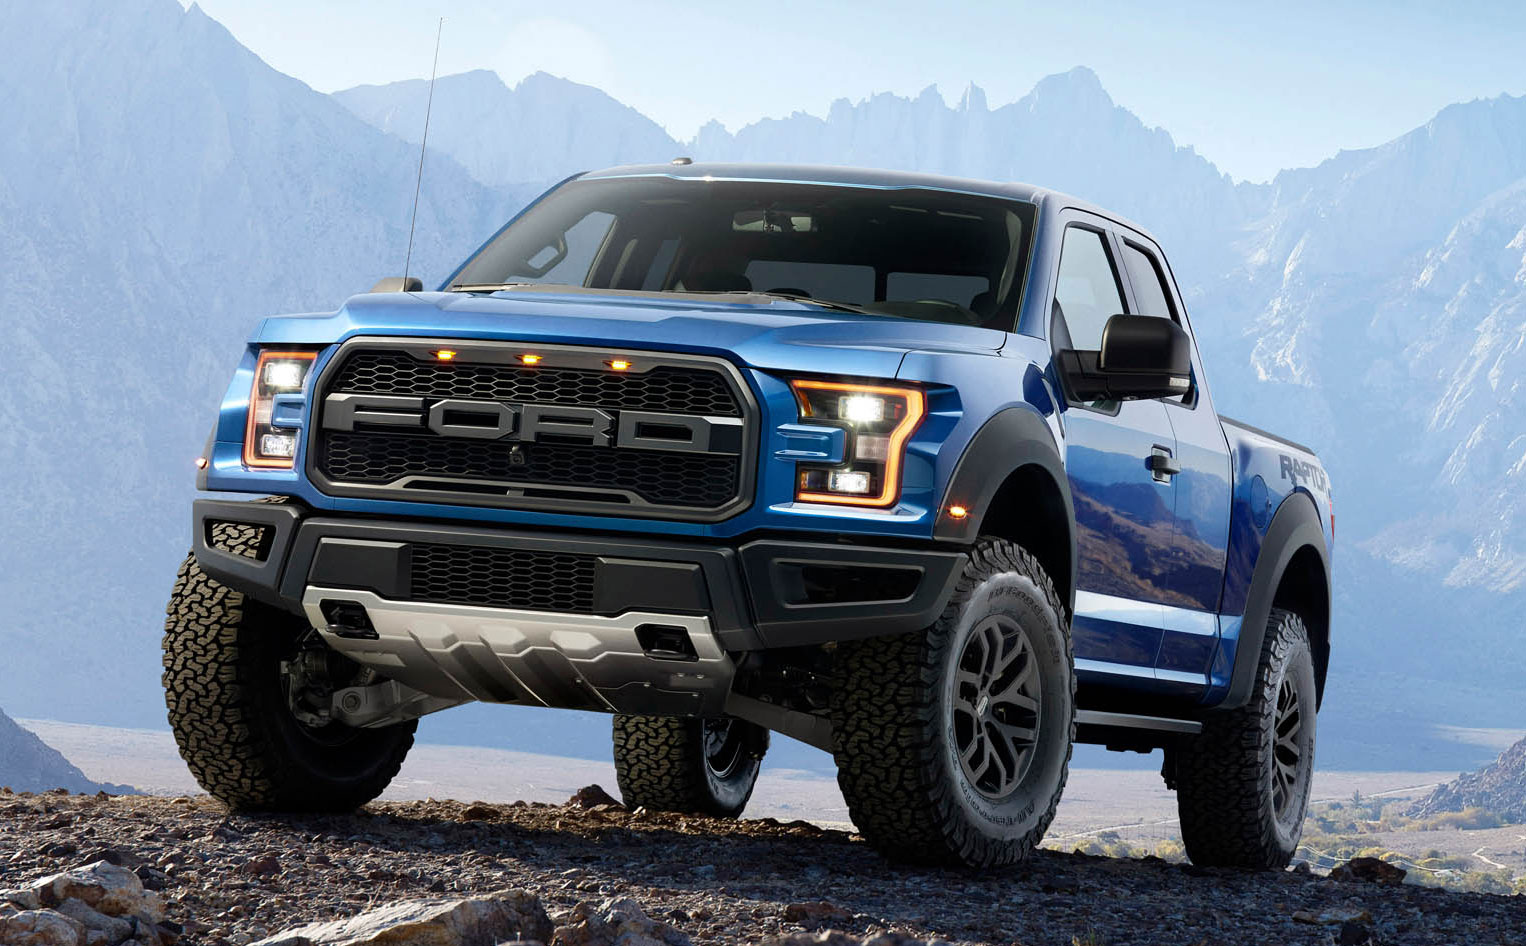 2016 Ford F 150 Raptor Wallpapers Android 2016 Car Wallpapers 1526x946